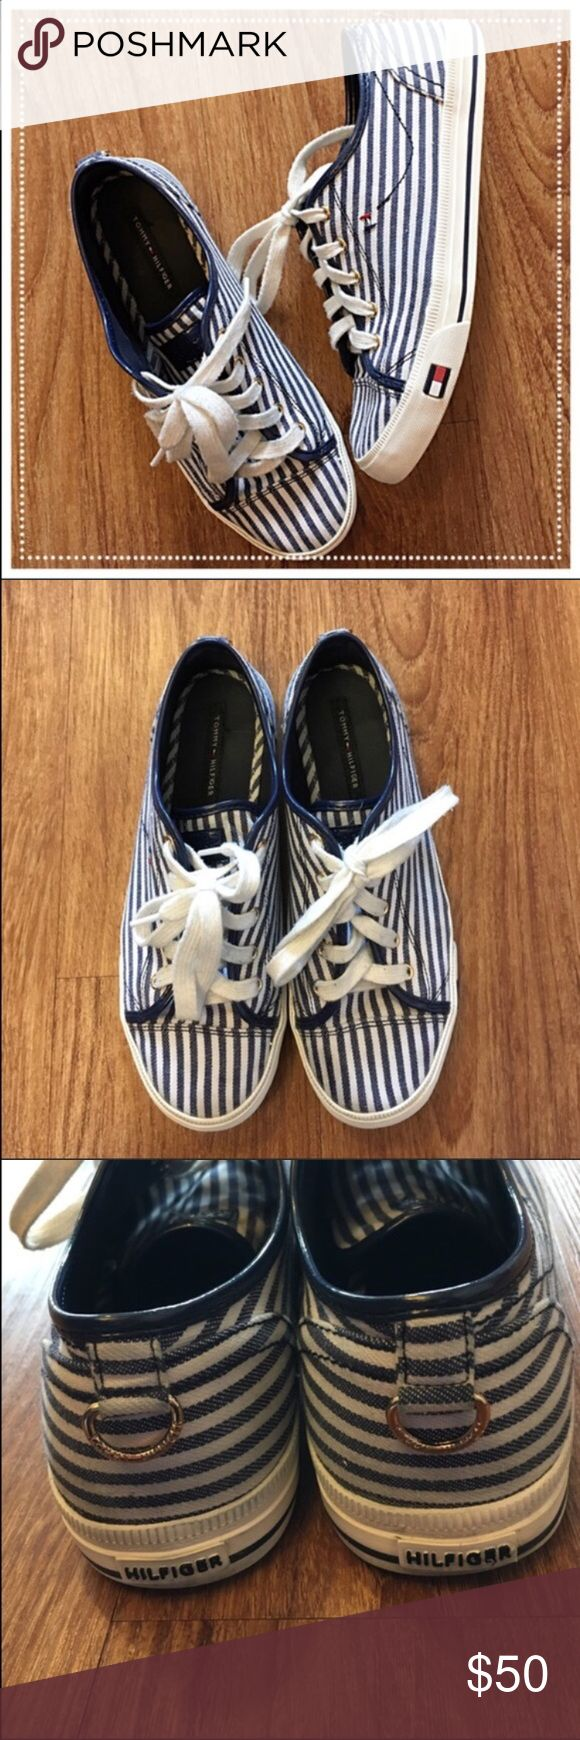 """Tommy Hilfiger blue stripe shoes golden details 📦Same day shipping (as long as P.O. is open for business). ❤ Measurements are approximate. Descriptions are accurate to the best of my knowledge.  These comfortably chic blue/white canvas shoes feature golden detailing in the lacing grommets and the back ring that is stamped """"TOMMY HILFIGER"""". These shoes are easy to wipe clean with durable rubber soles and canvas material. The only signs of wear are on the bottoms of the shoes. Only selling…"""